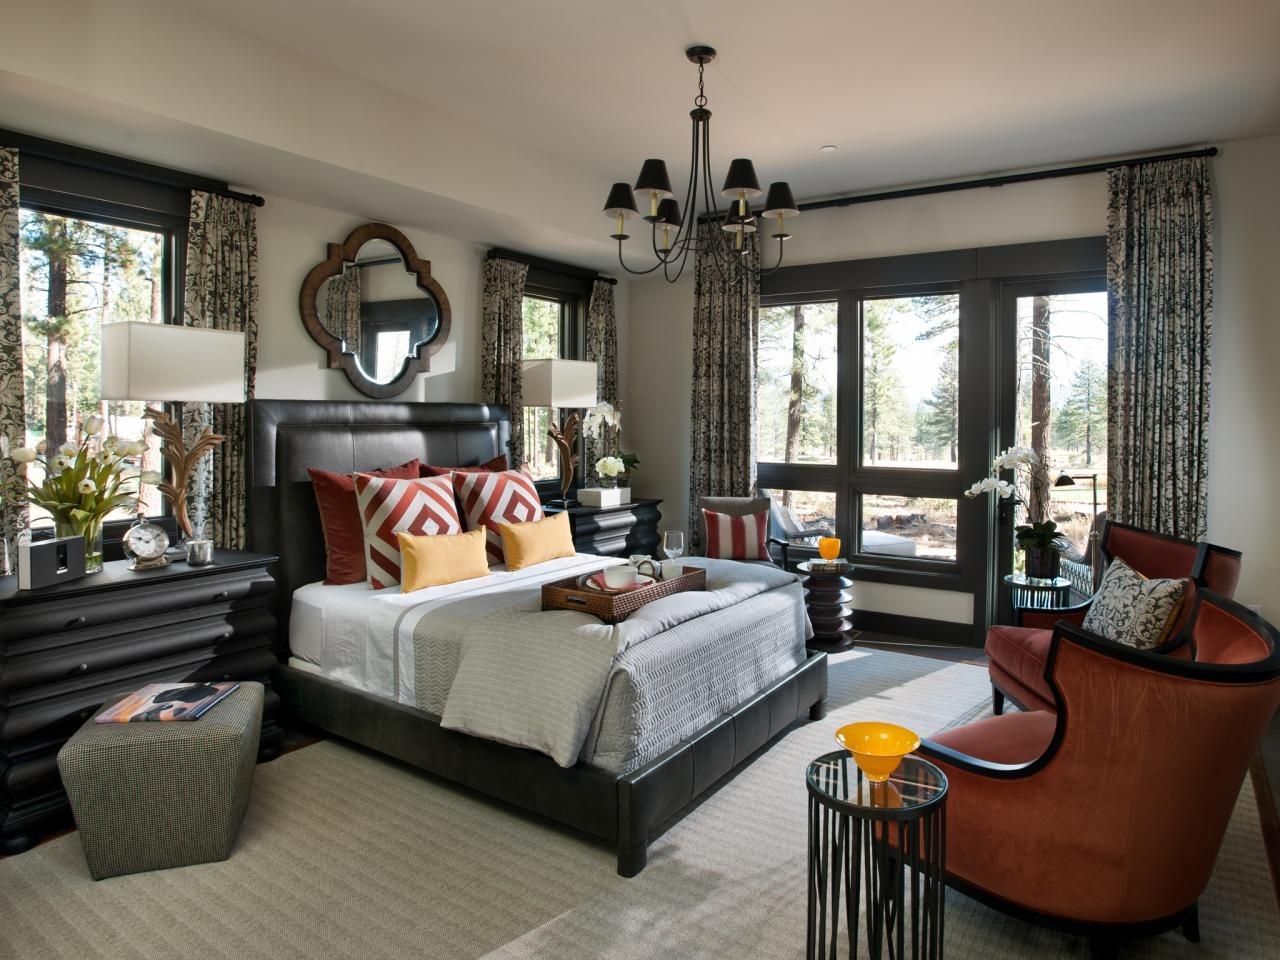 HGTV Dream Home Bedrooms Recap  Hgtv dream home, Dream master